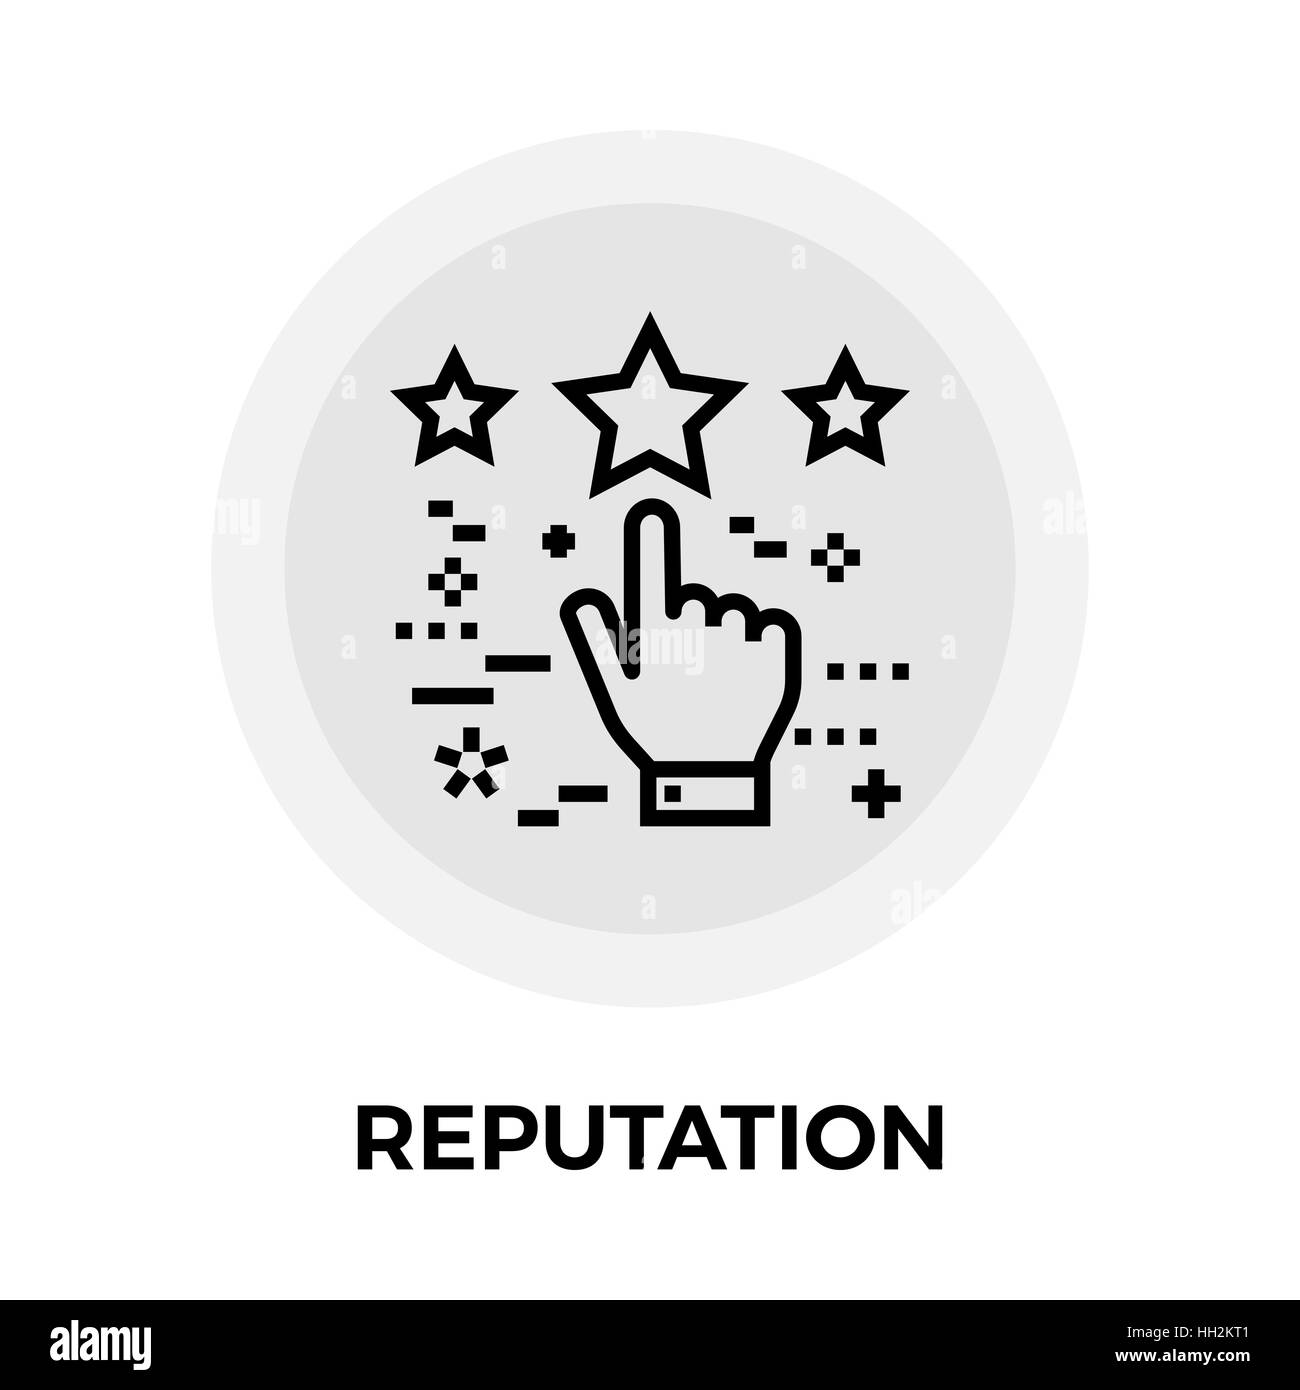 Reputation icon vector. Flat icon isolated on the white background. Editable EPS file. Vector illustration. - Stock Image